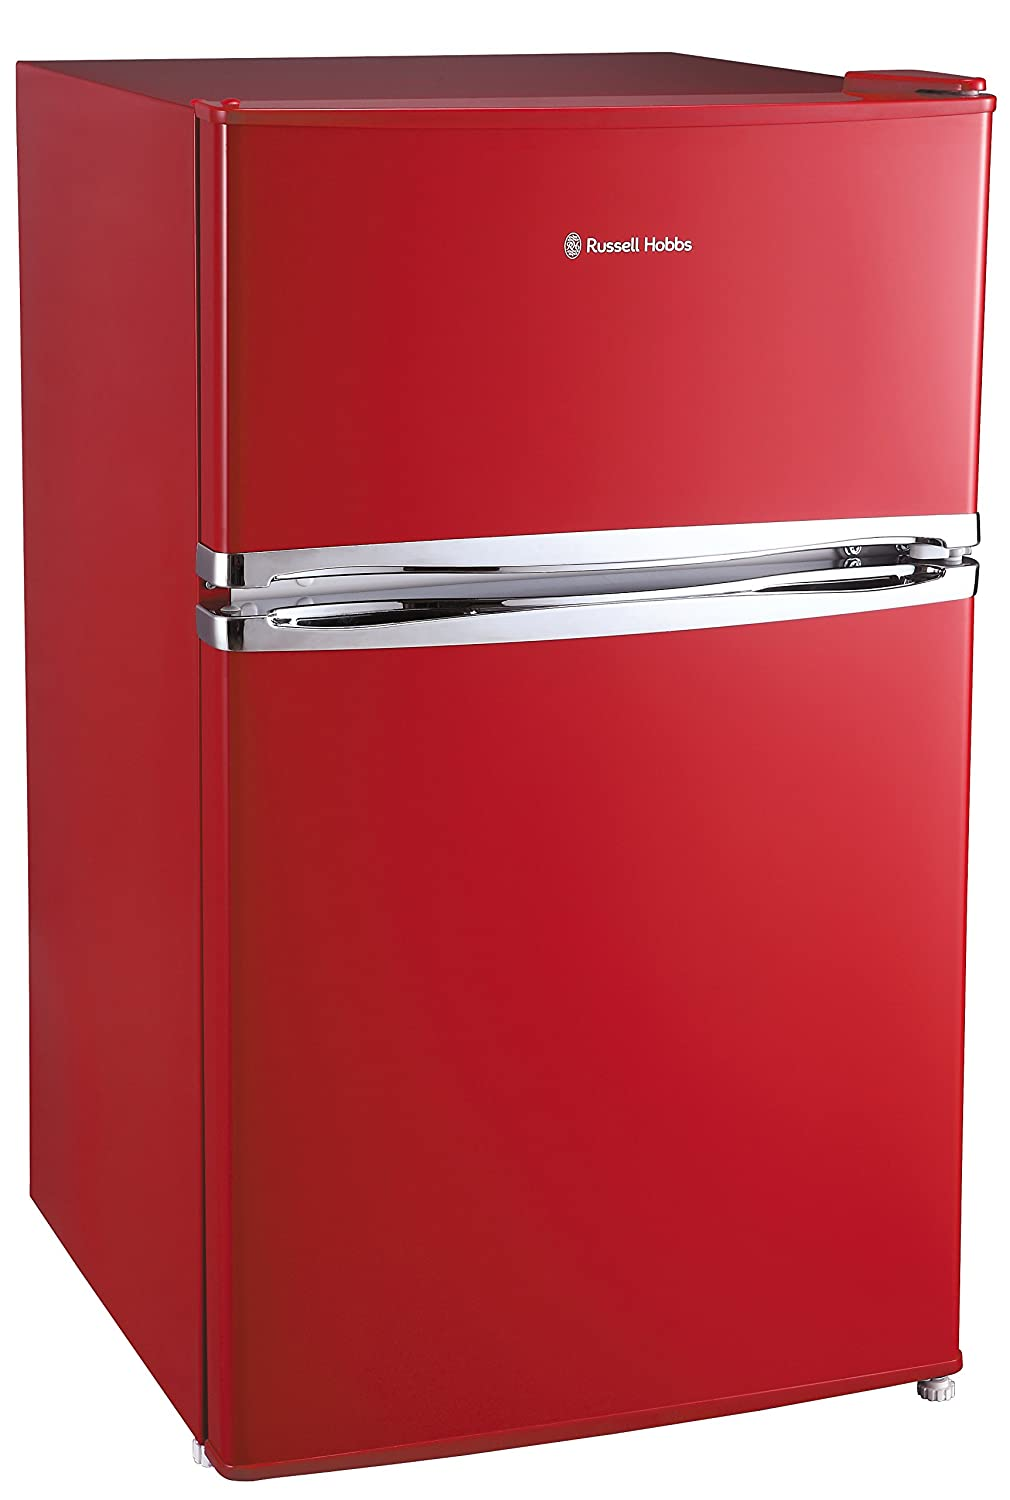 Russell Hobbs RHUCFF50R Independiente 50cm ancho rojo bajo nevera ...